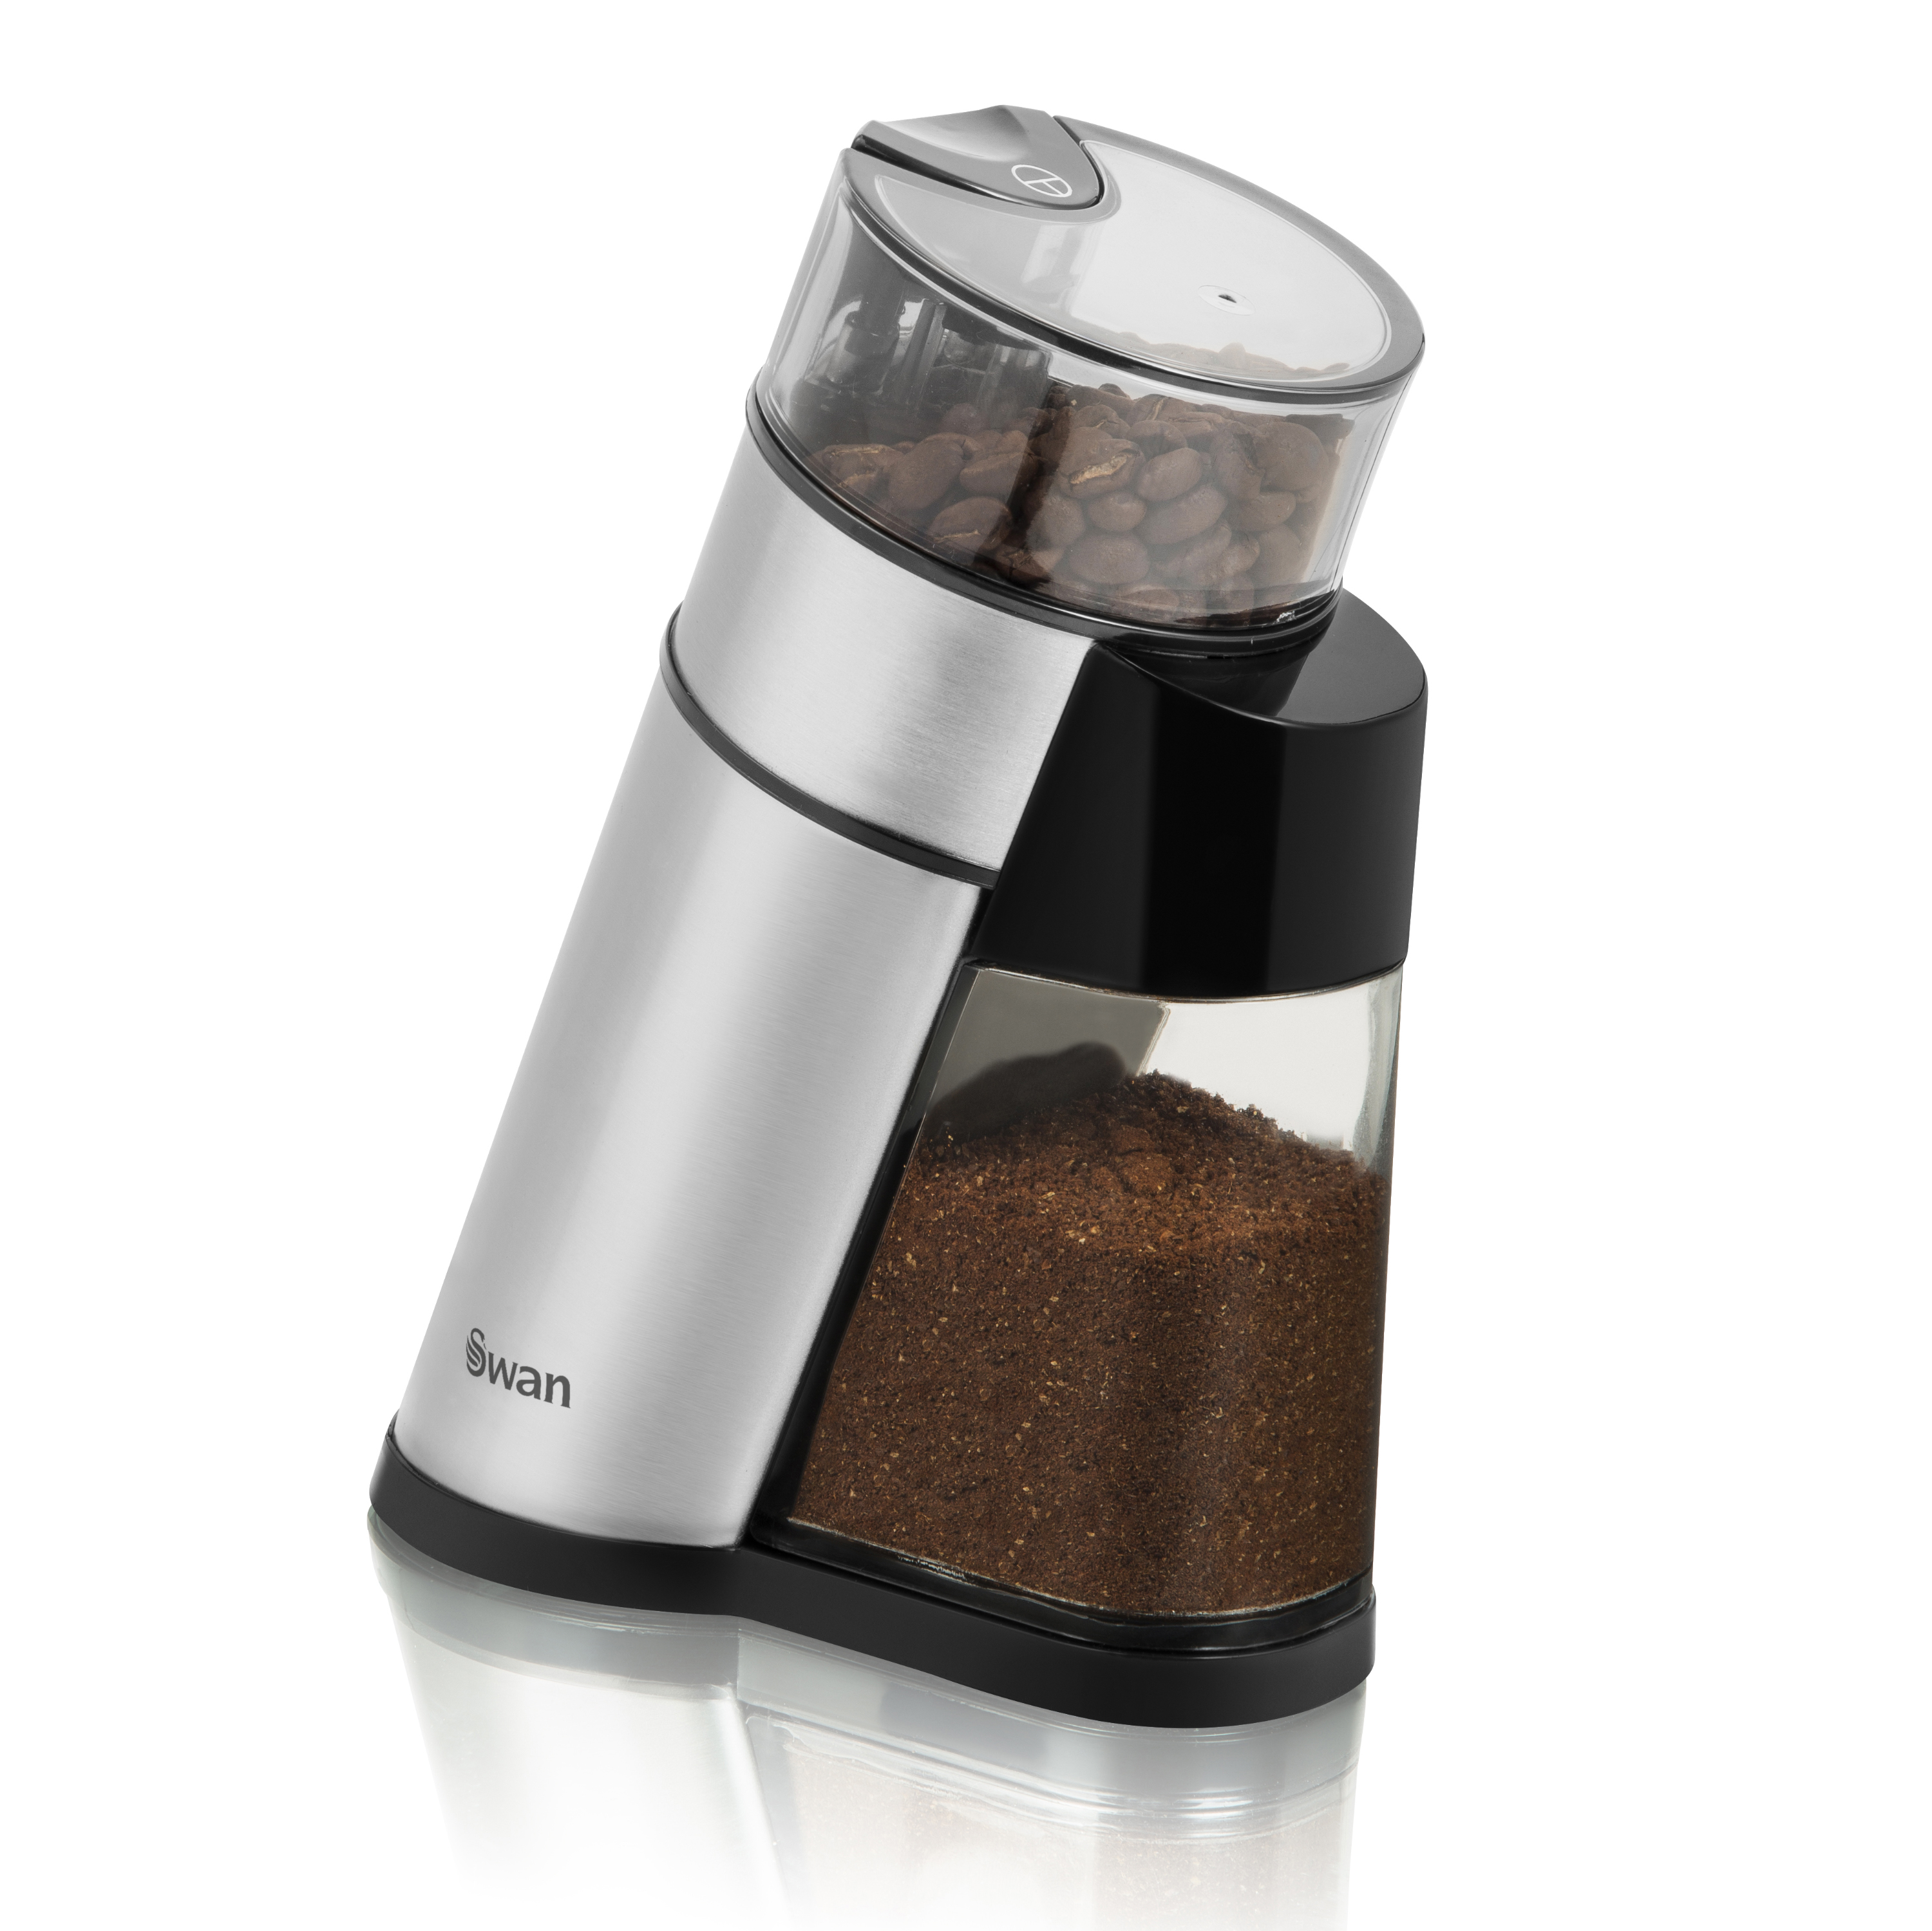 Swan S/S Coffee Grinder - S/Steel No Colour